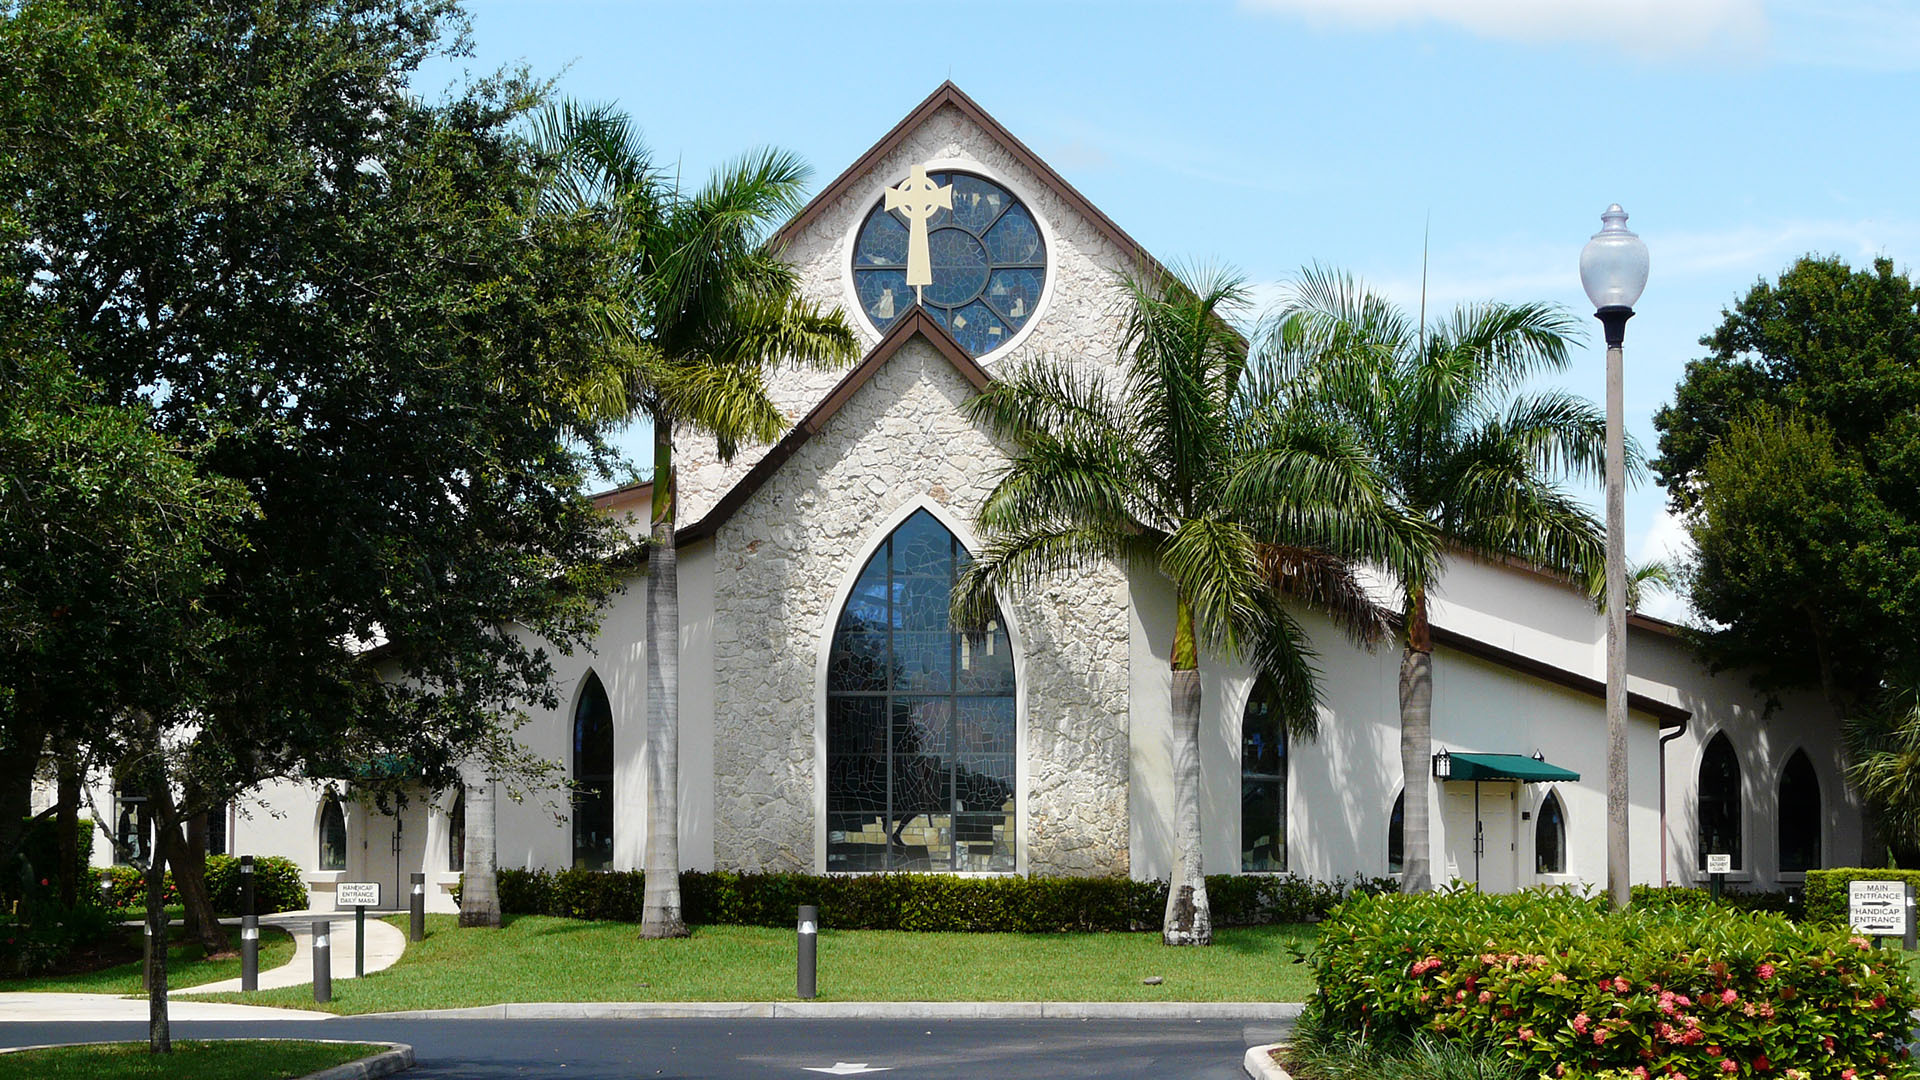 St patrick s palm beach gardens garden ftempo for St patrick s church palm beach gardens